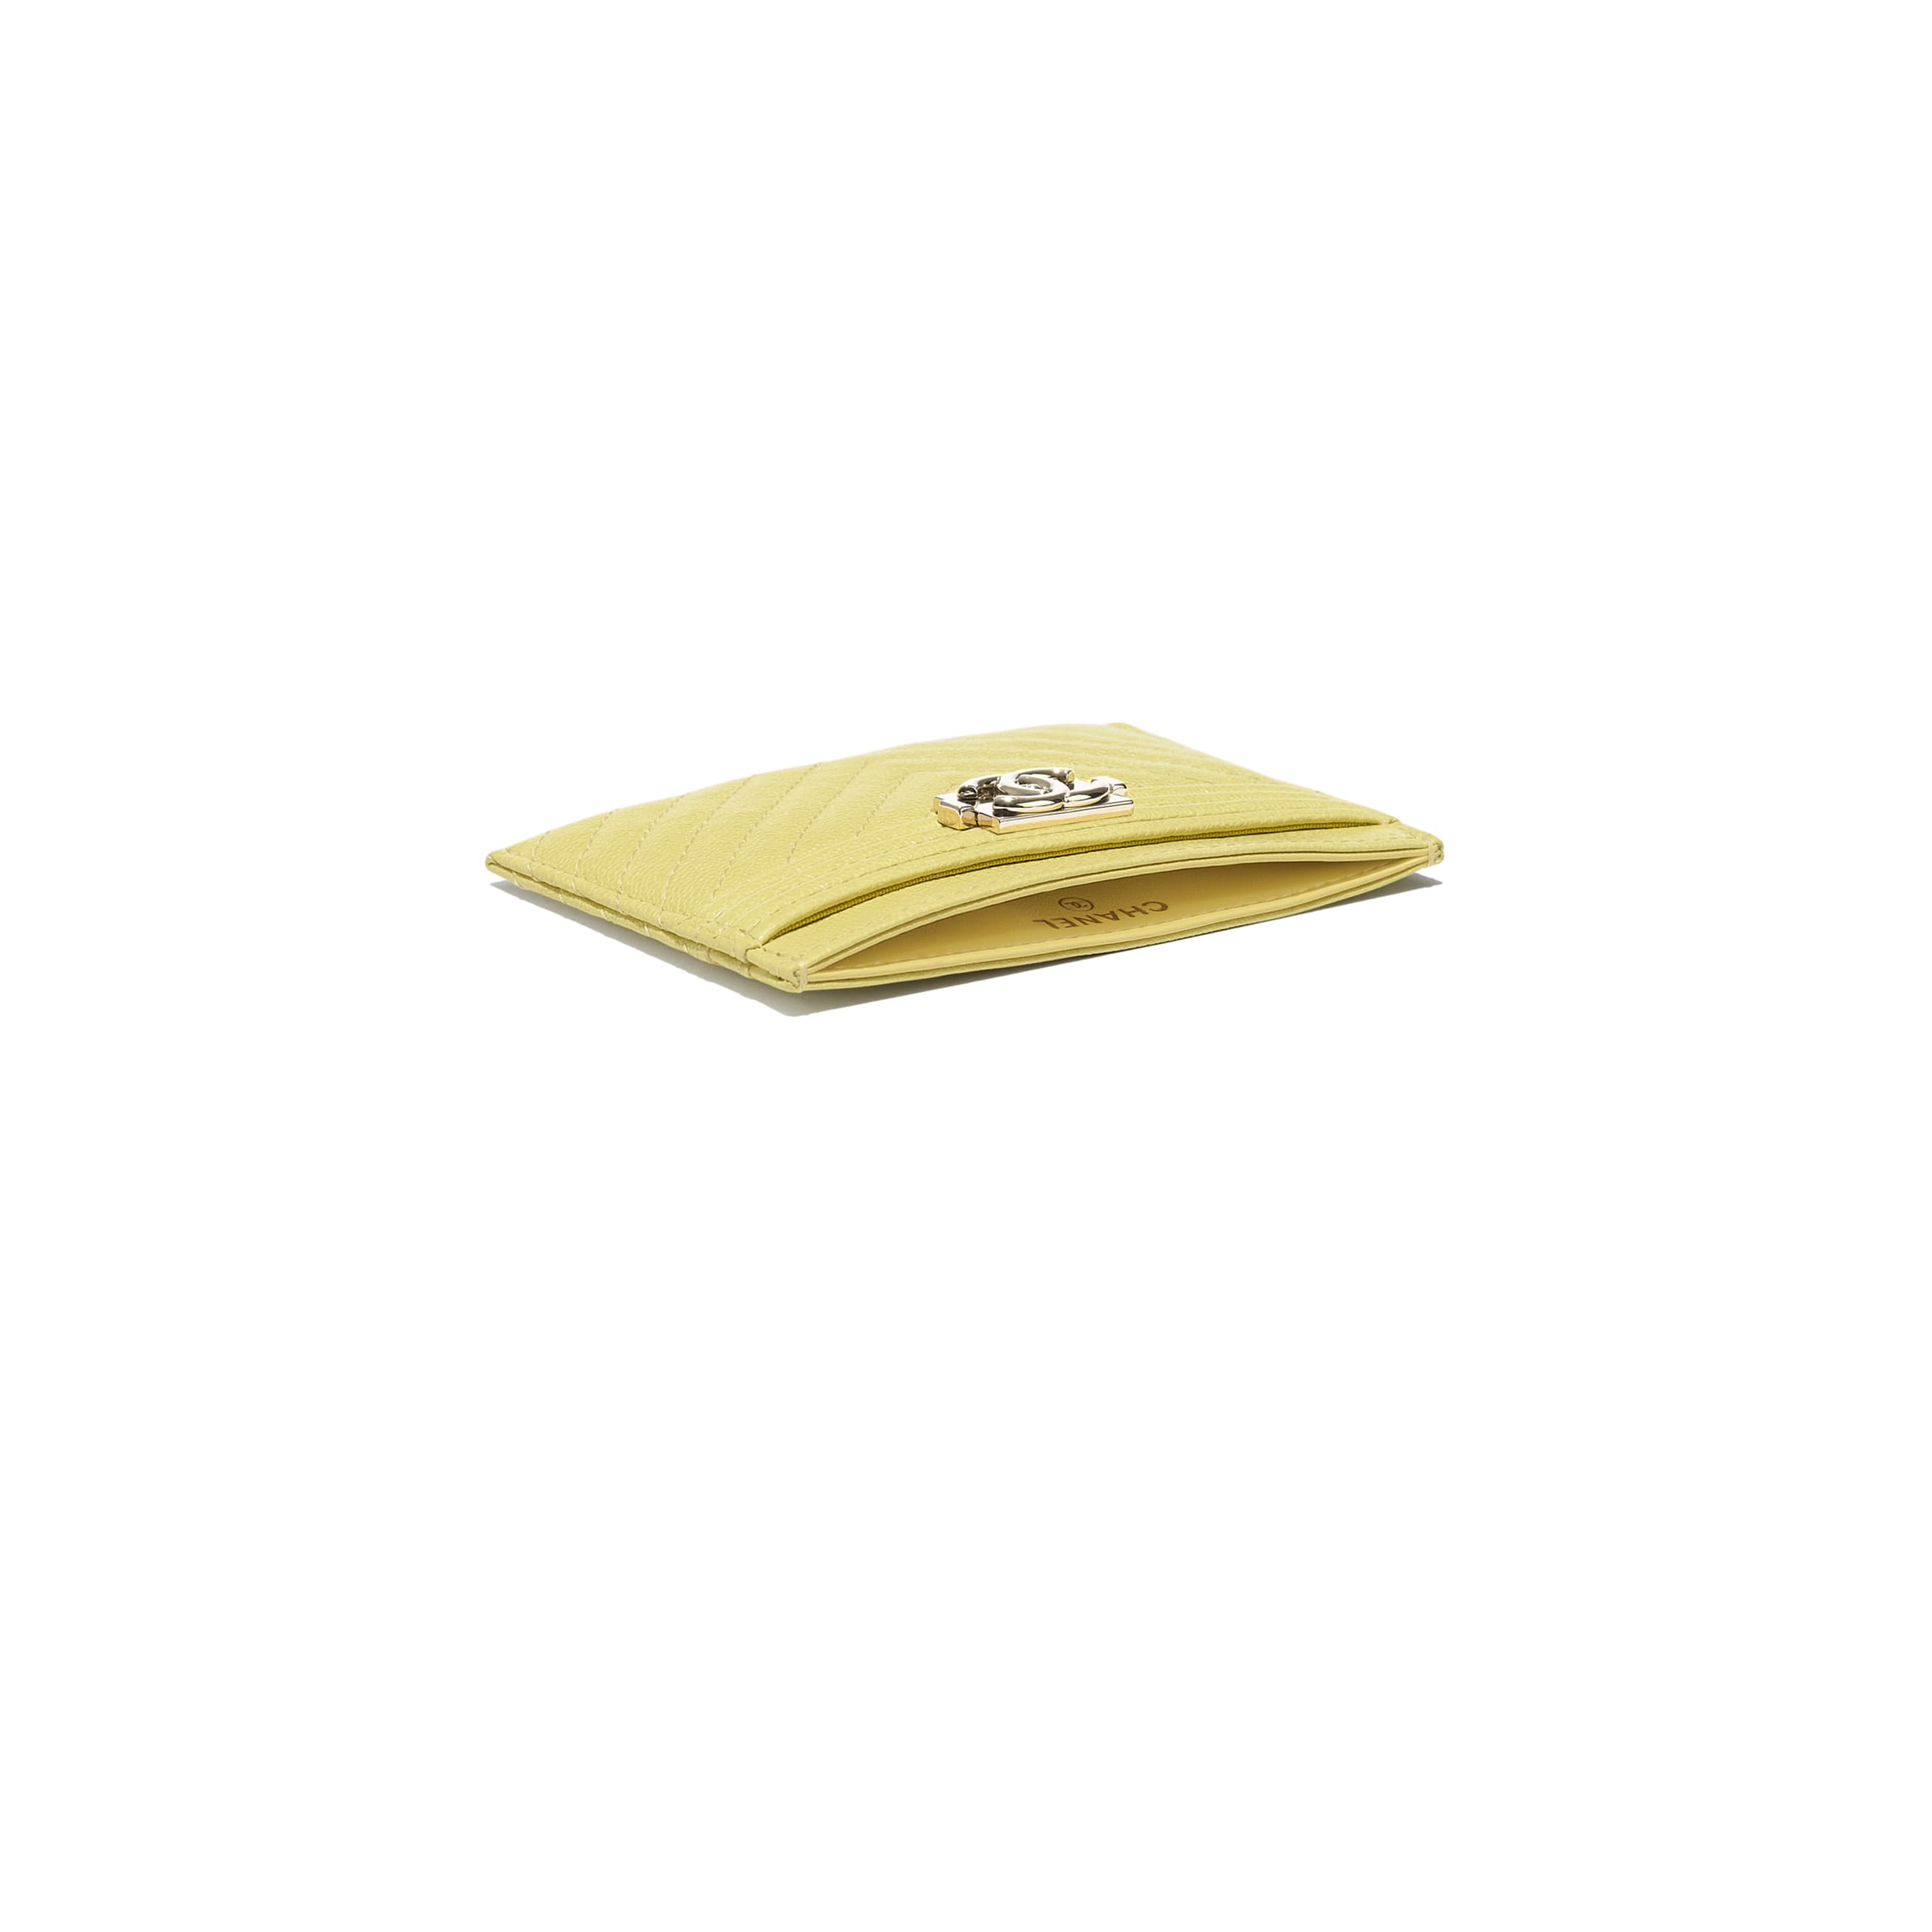 BOY CHANEL Card Holder - Yellow - Grained Calfskin & Gold-Tone Metal - CHANEL - Extra view - see standard sized version